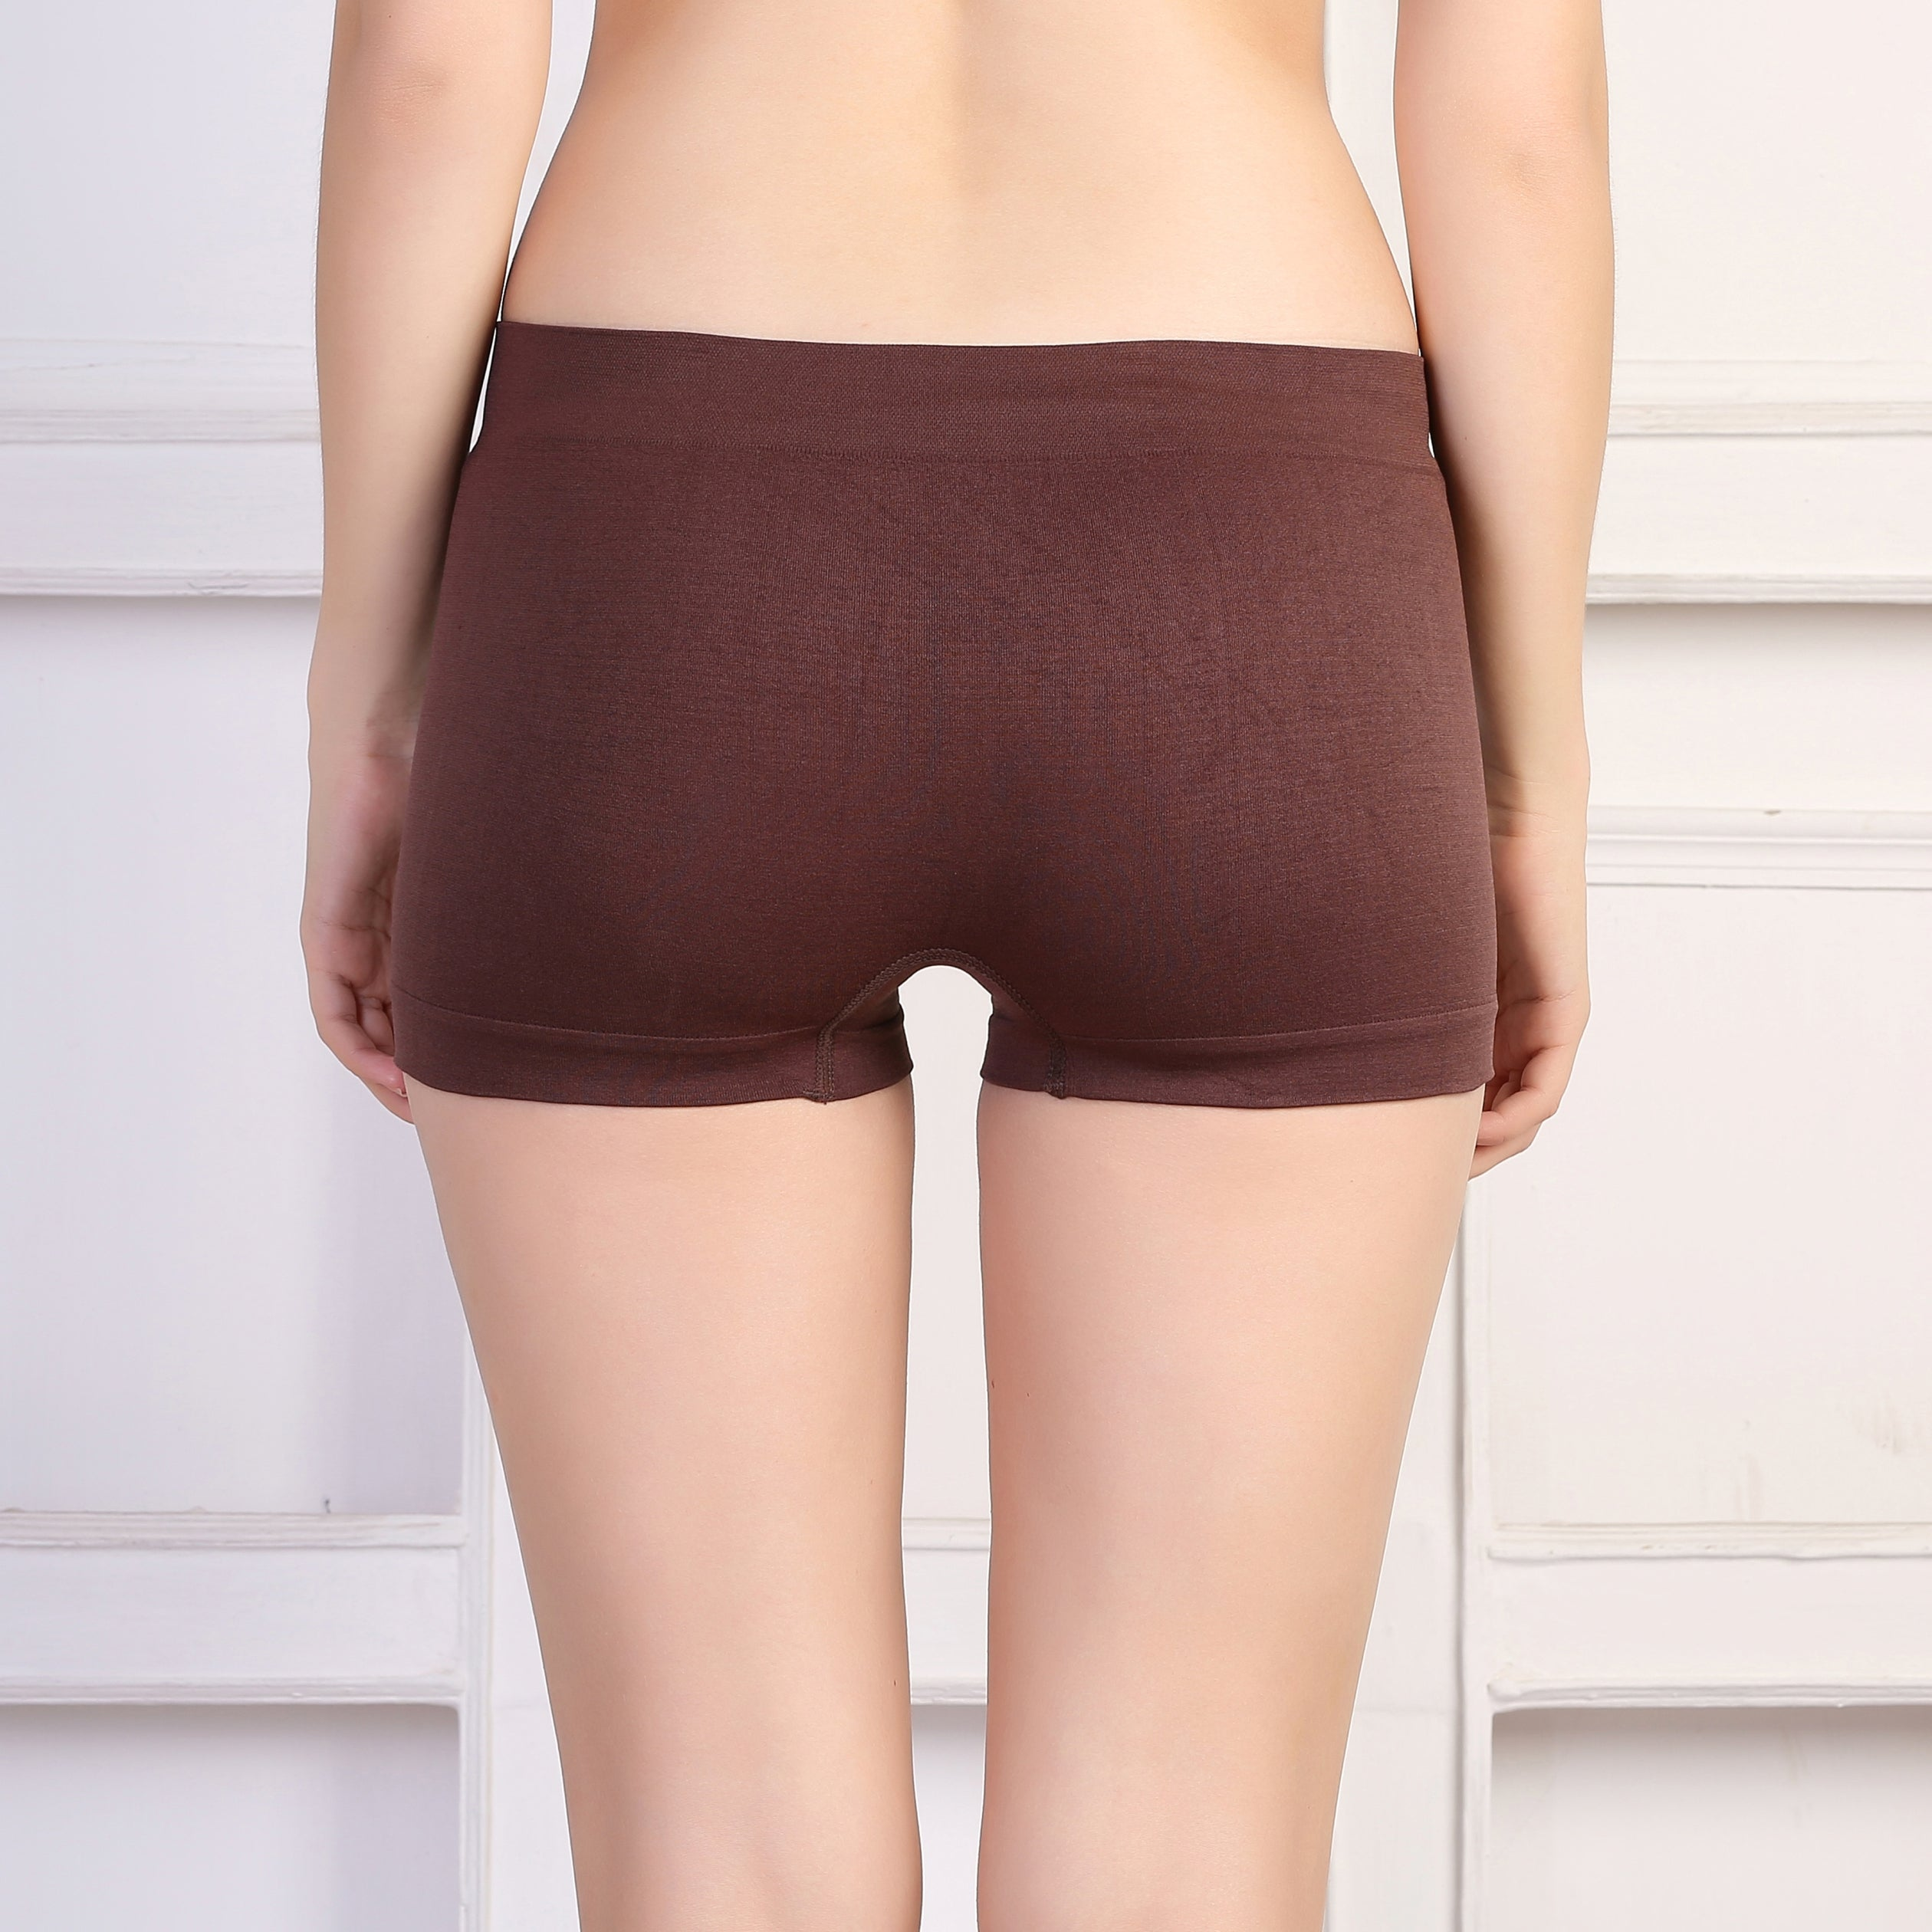 Ficuster Brown Solid High Rise Boyshort Panty